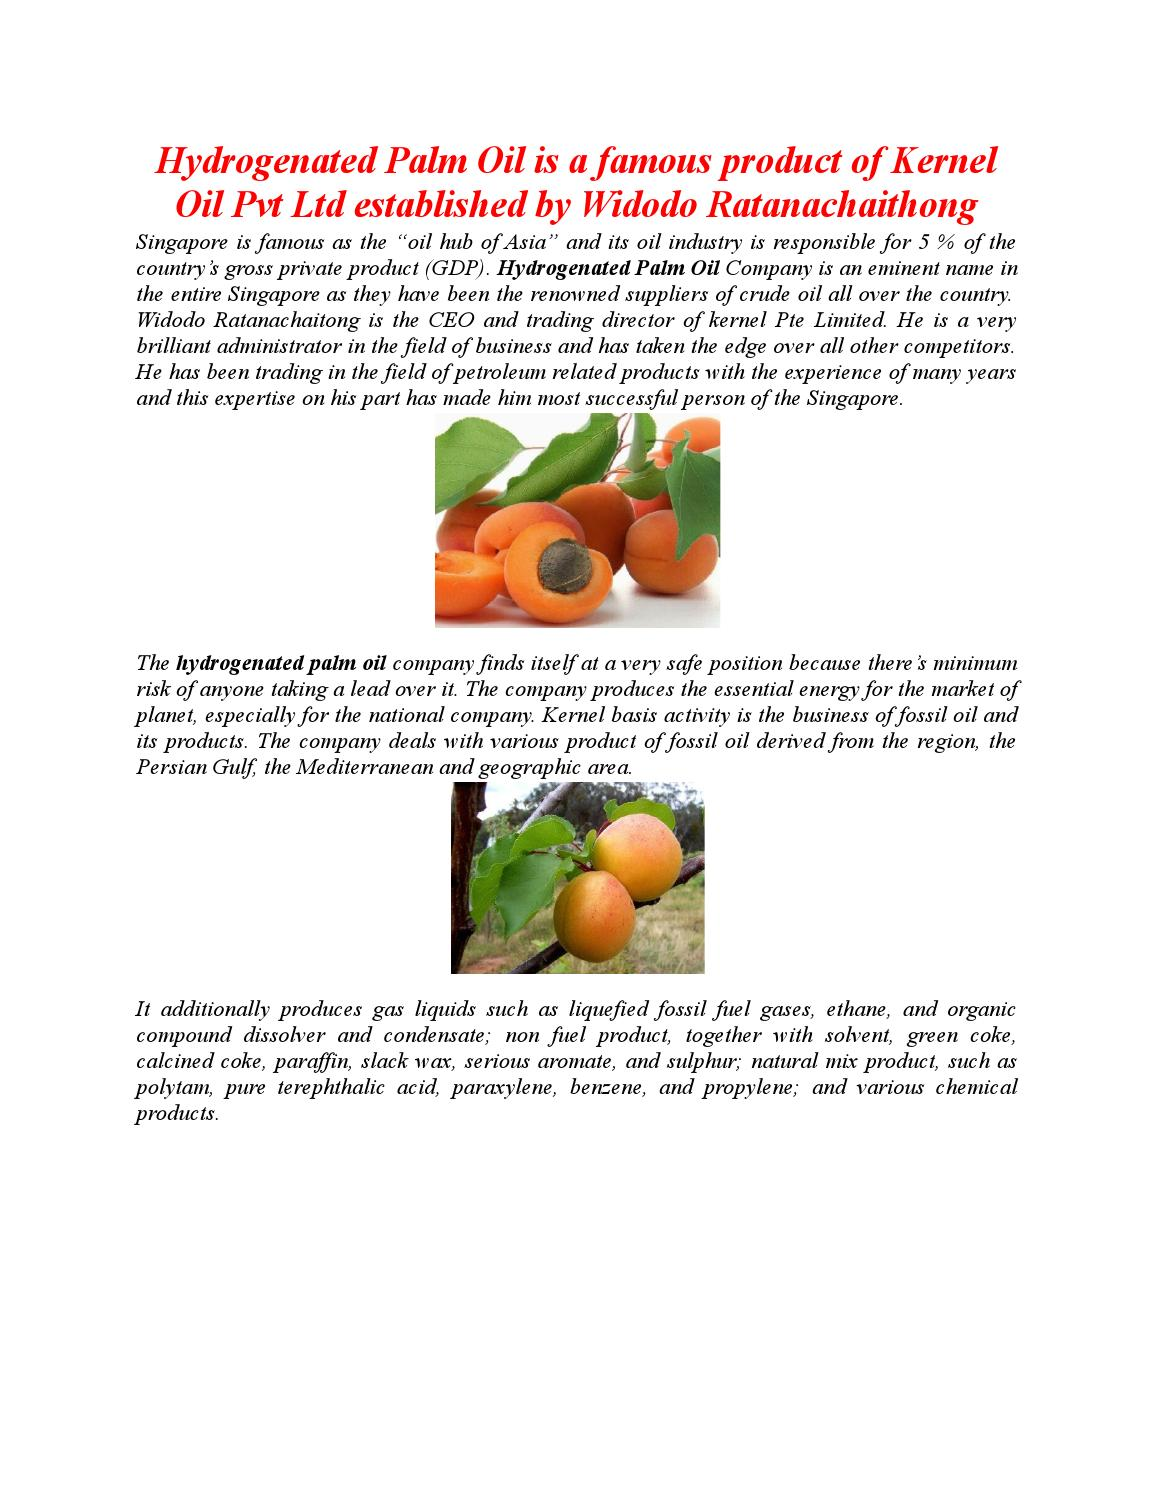 Hydrogenated palm oil is a famous product of kernel oil pvt